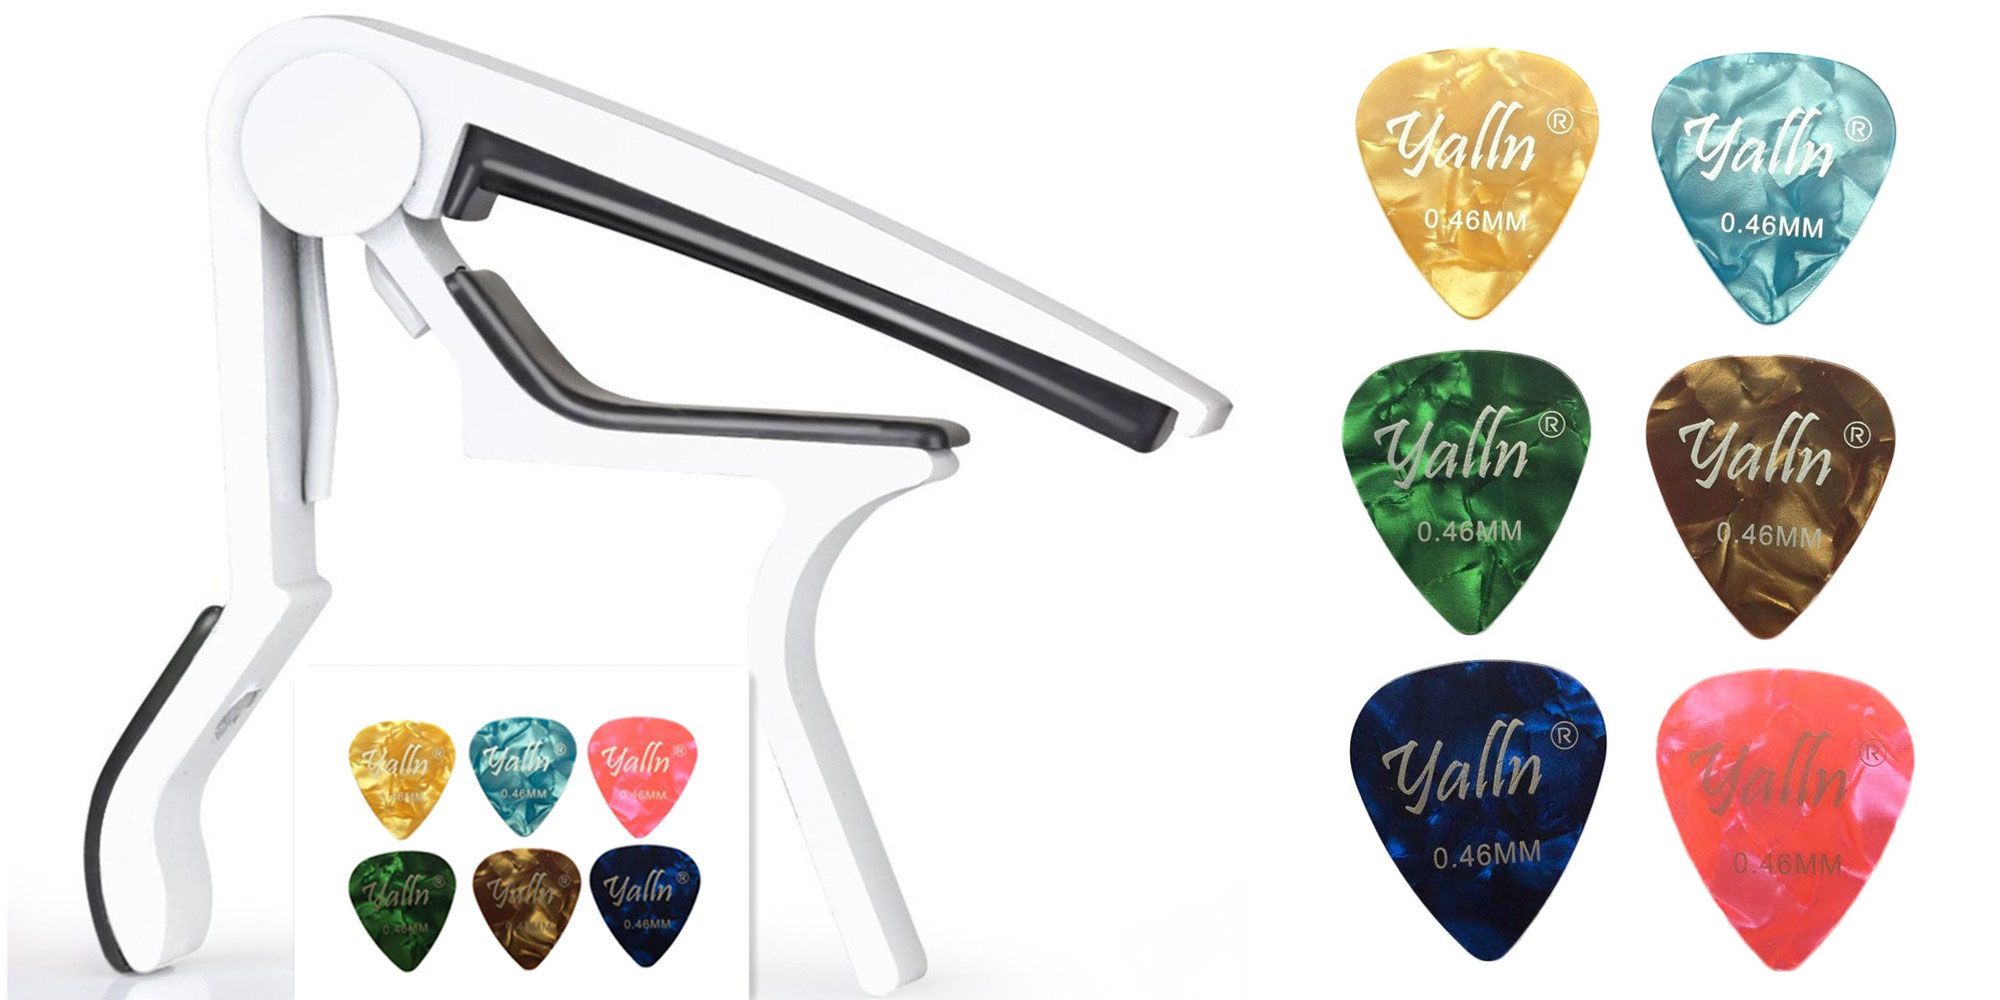 Add six spare guitar picks and a Capo key clamp to your collection for just $3 Prime shipped